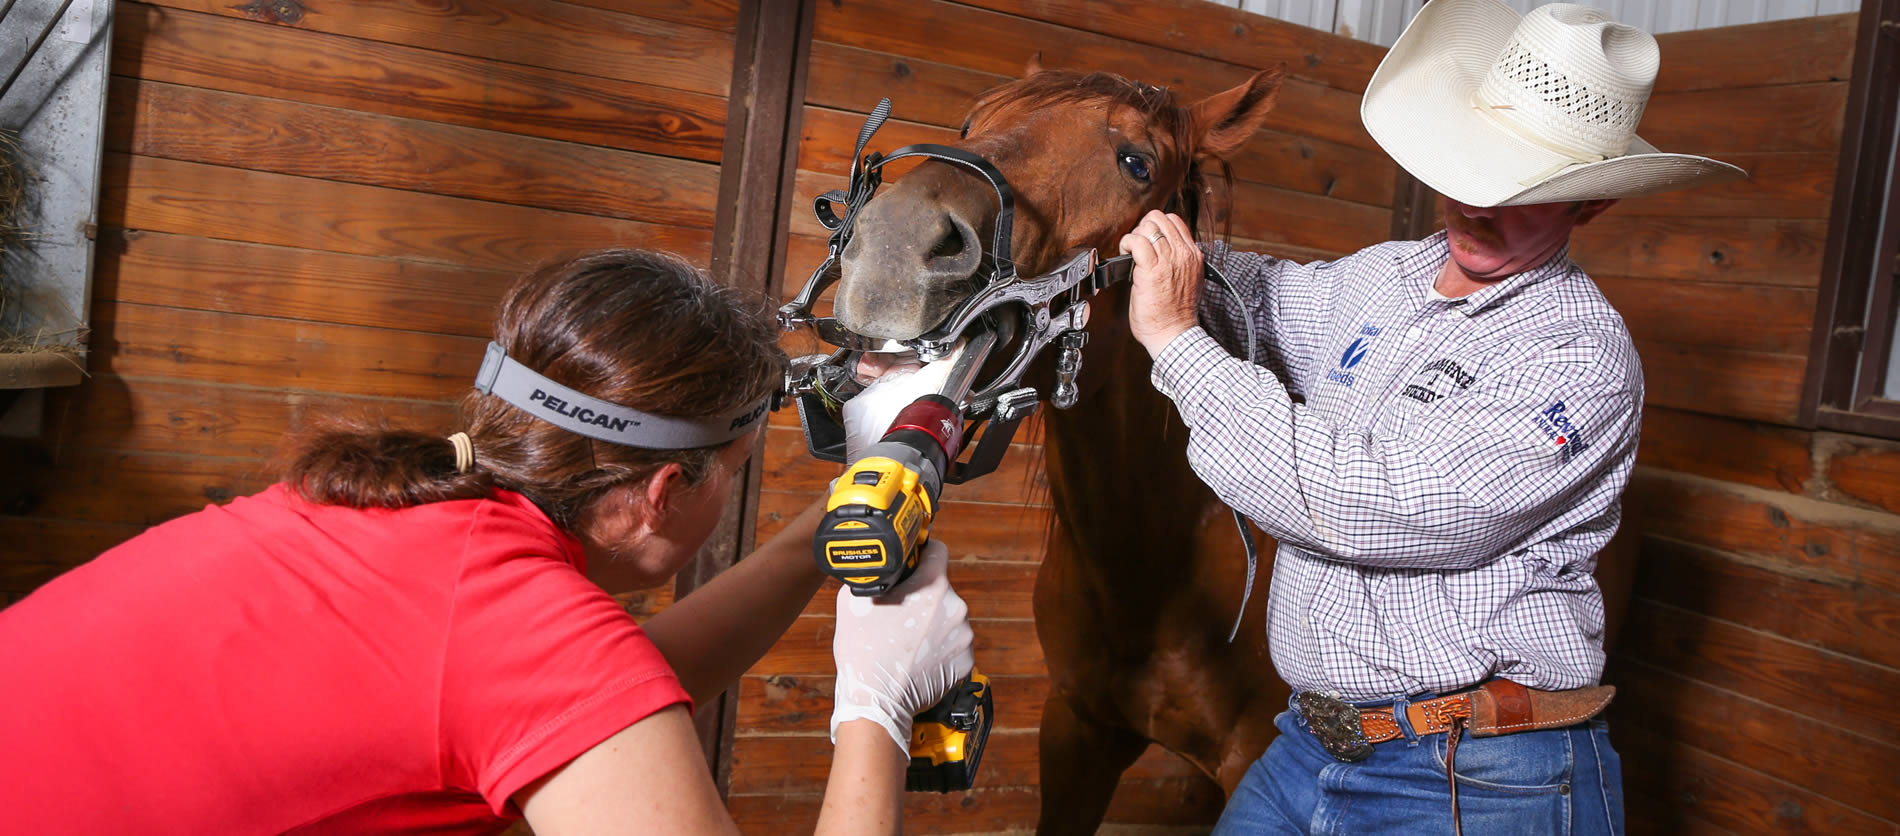 diamond j vet services for horses, dogs and cats